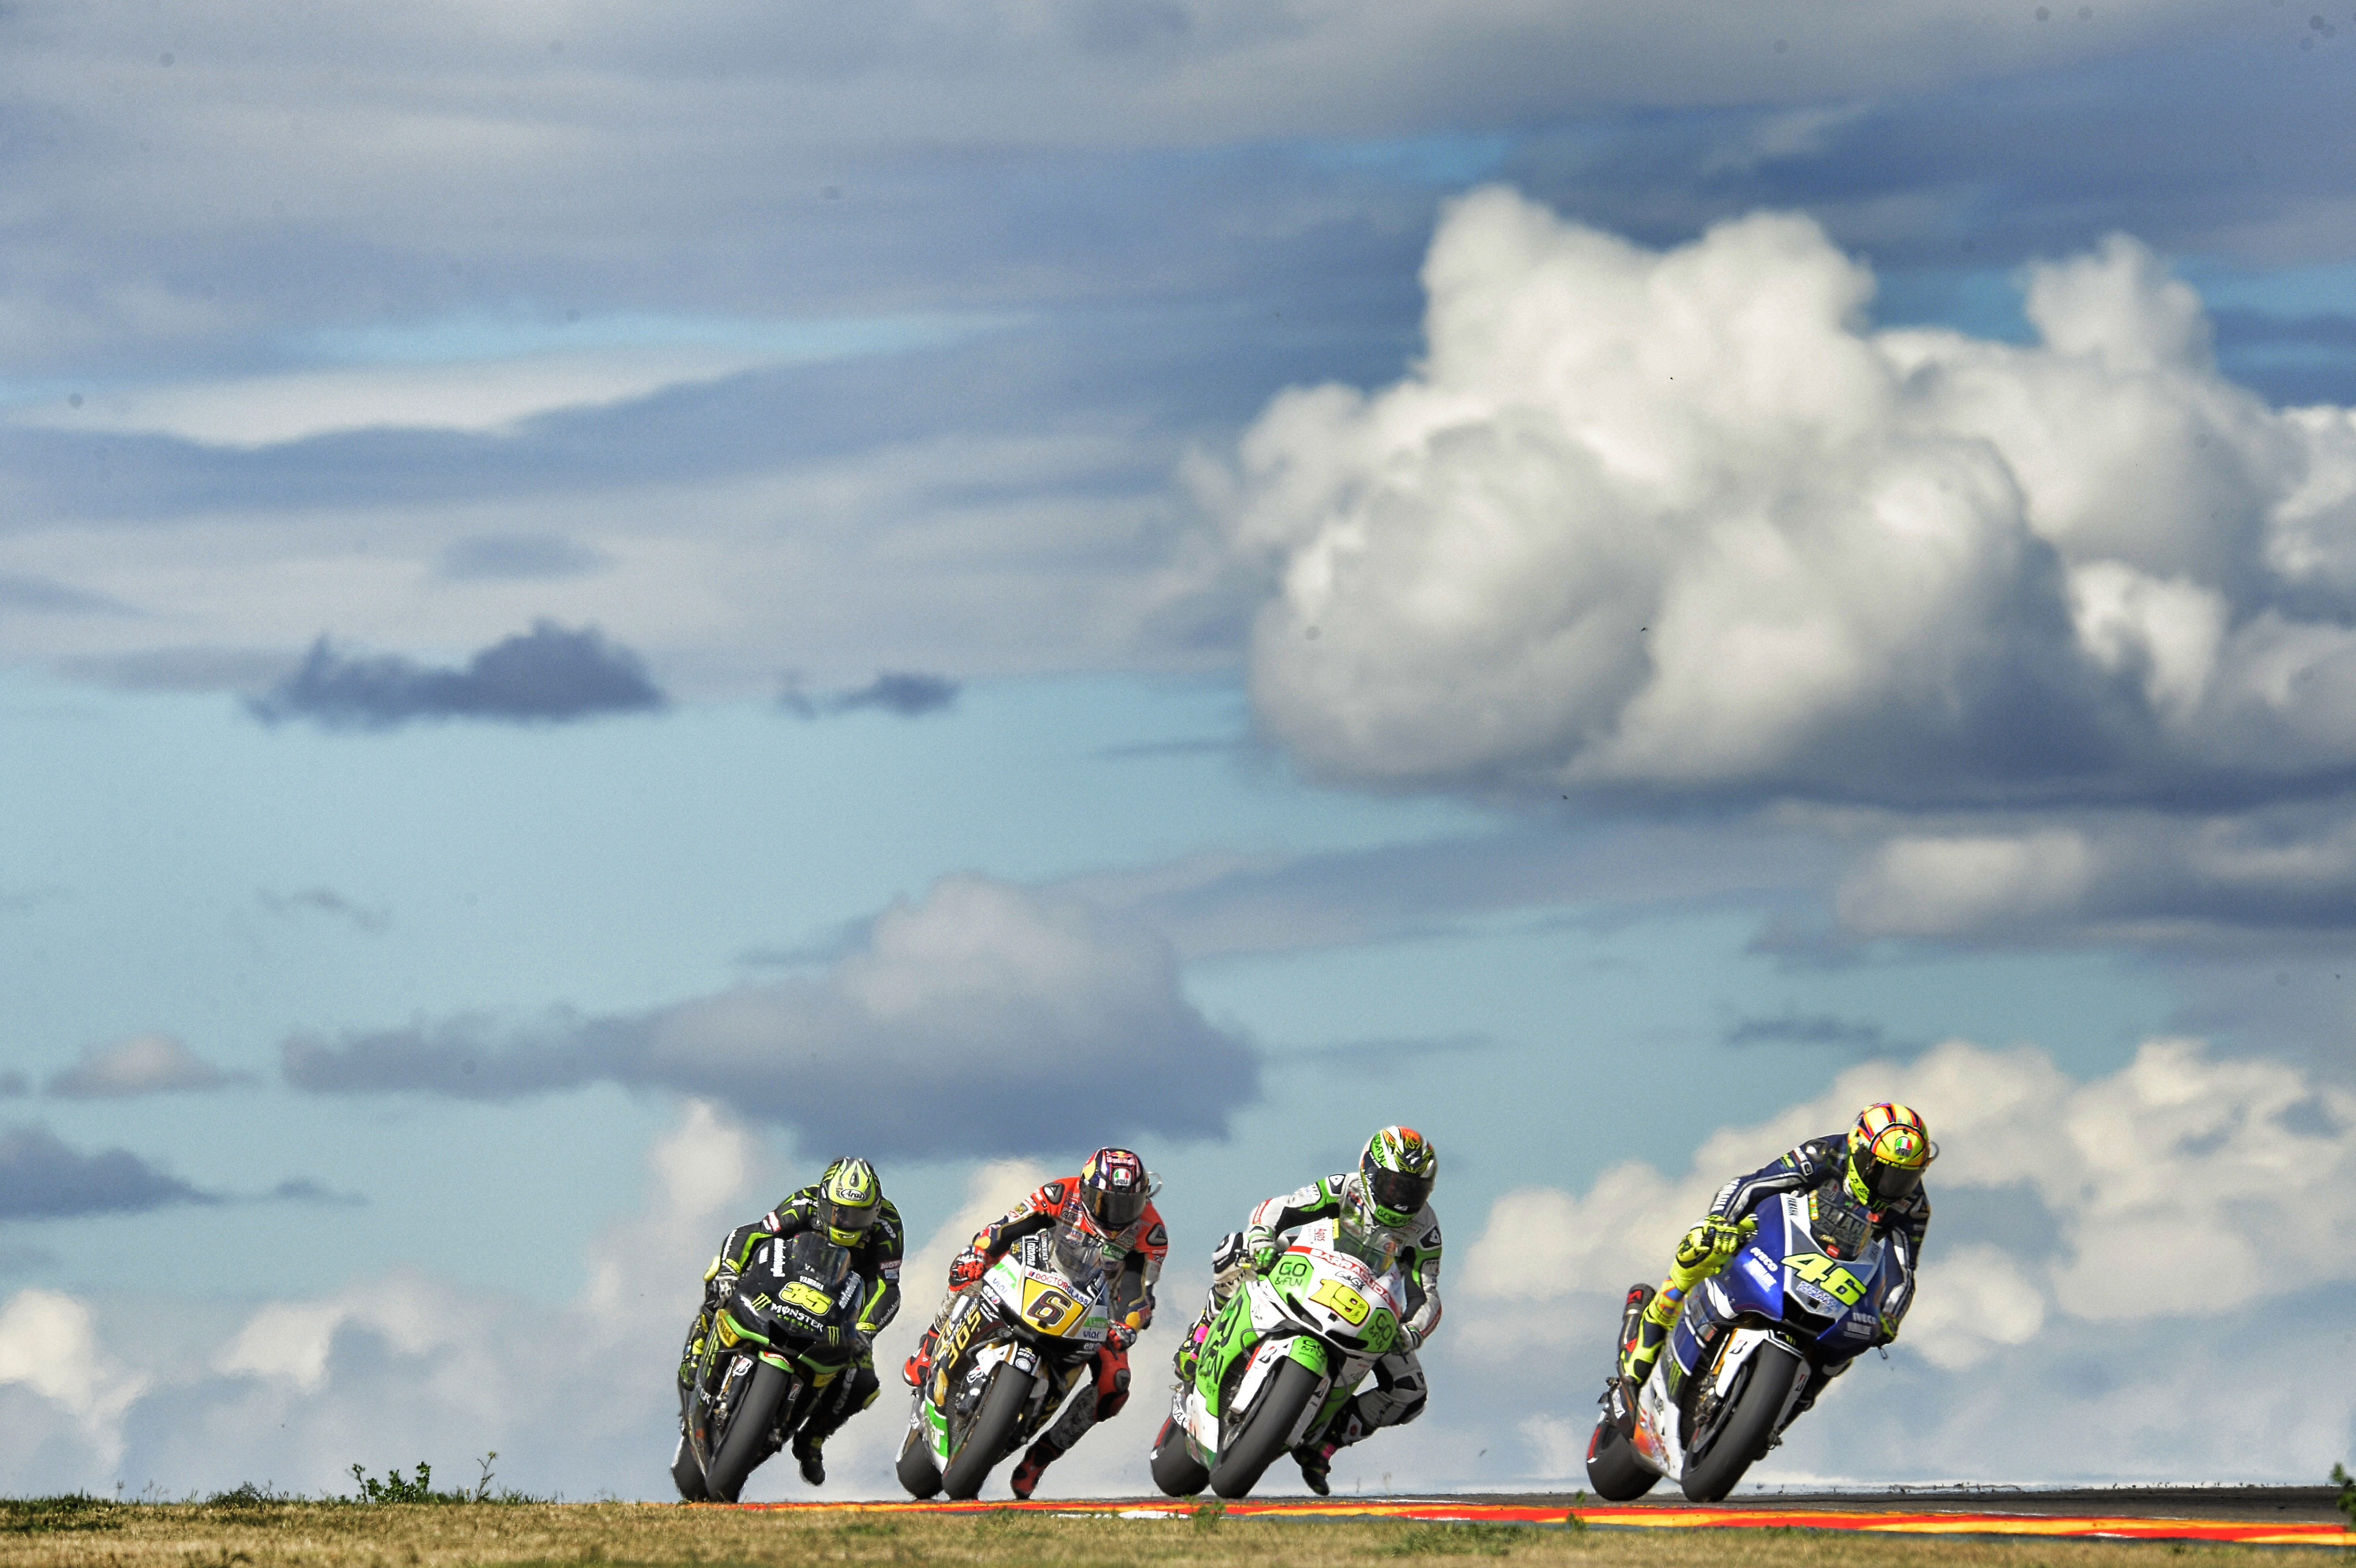 Yamaha pic Aragon MotoGP 29Sep2013 | INDIA in F1